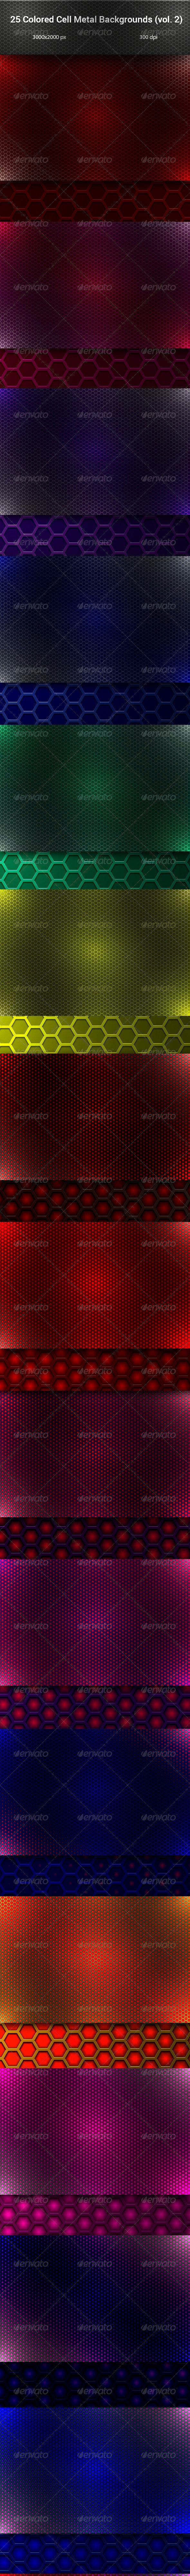 Colored Cell Metal Backgrouds Set (vol. 2) - Backgrounds Graphics